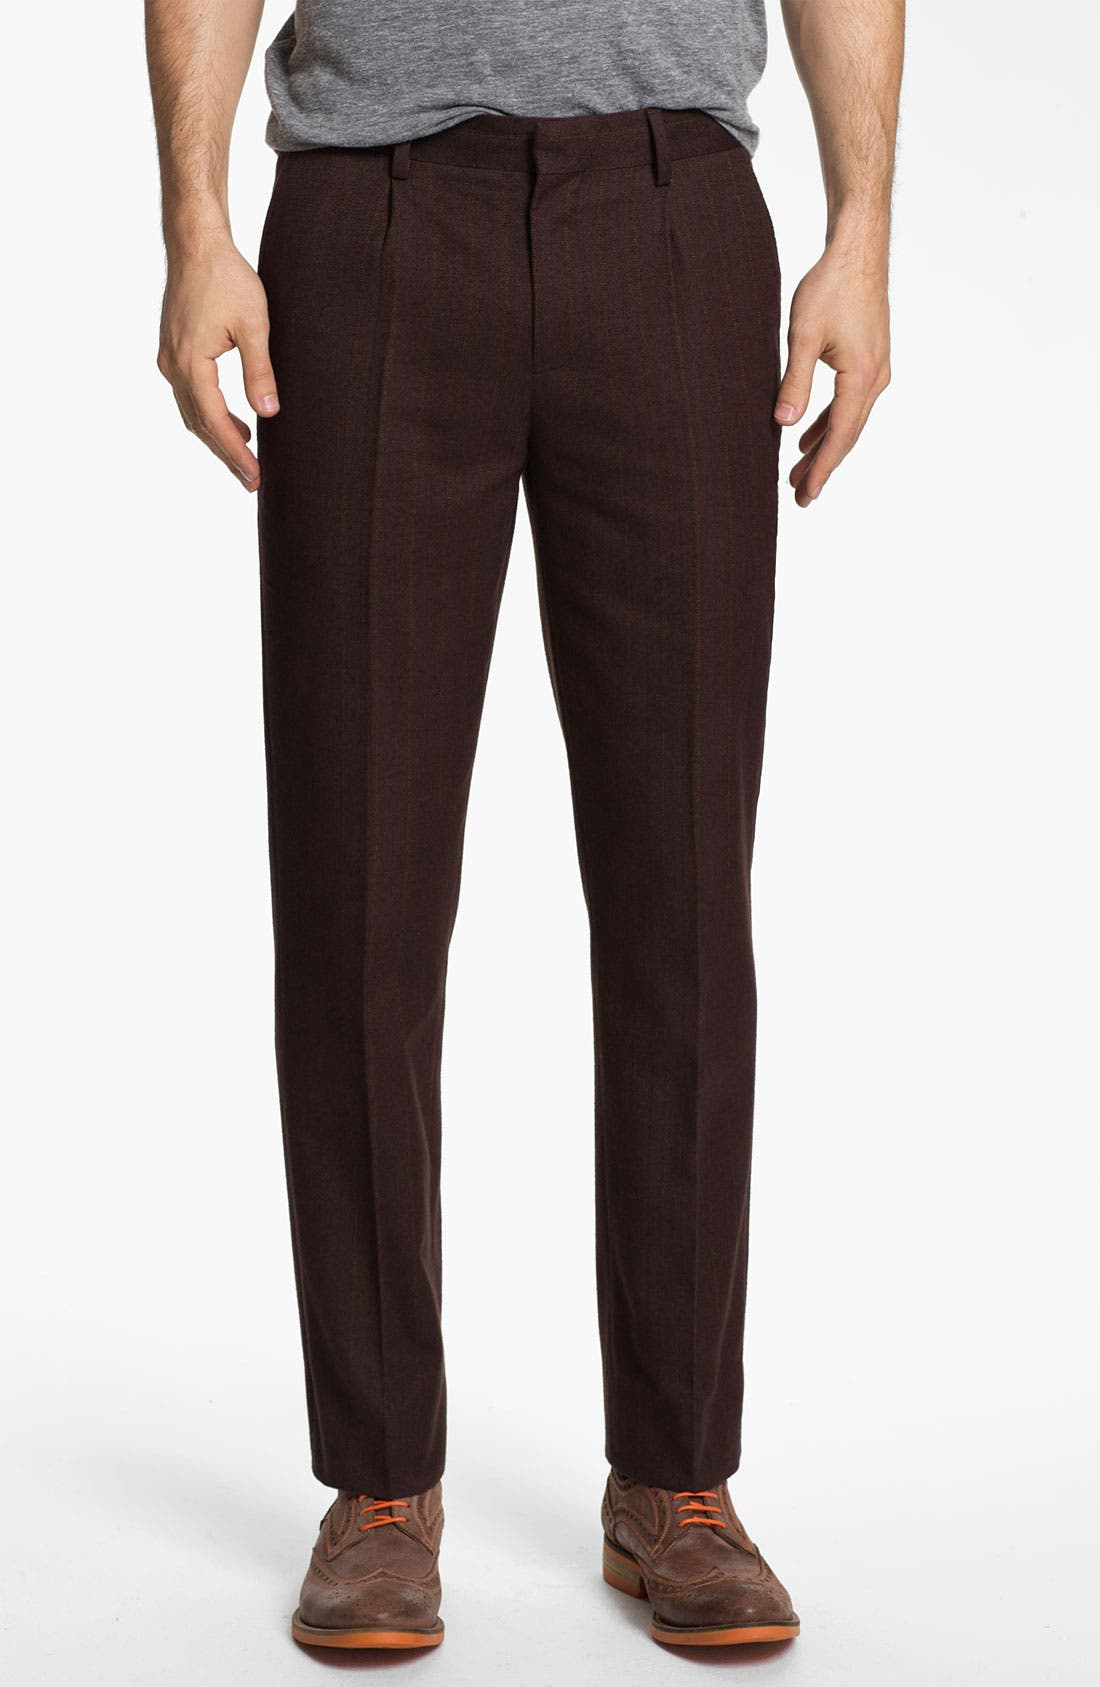 Alternate Image 1 Selected - 1901 Slim Pleated Trousers